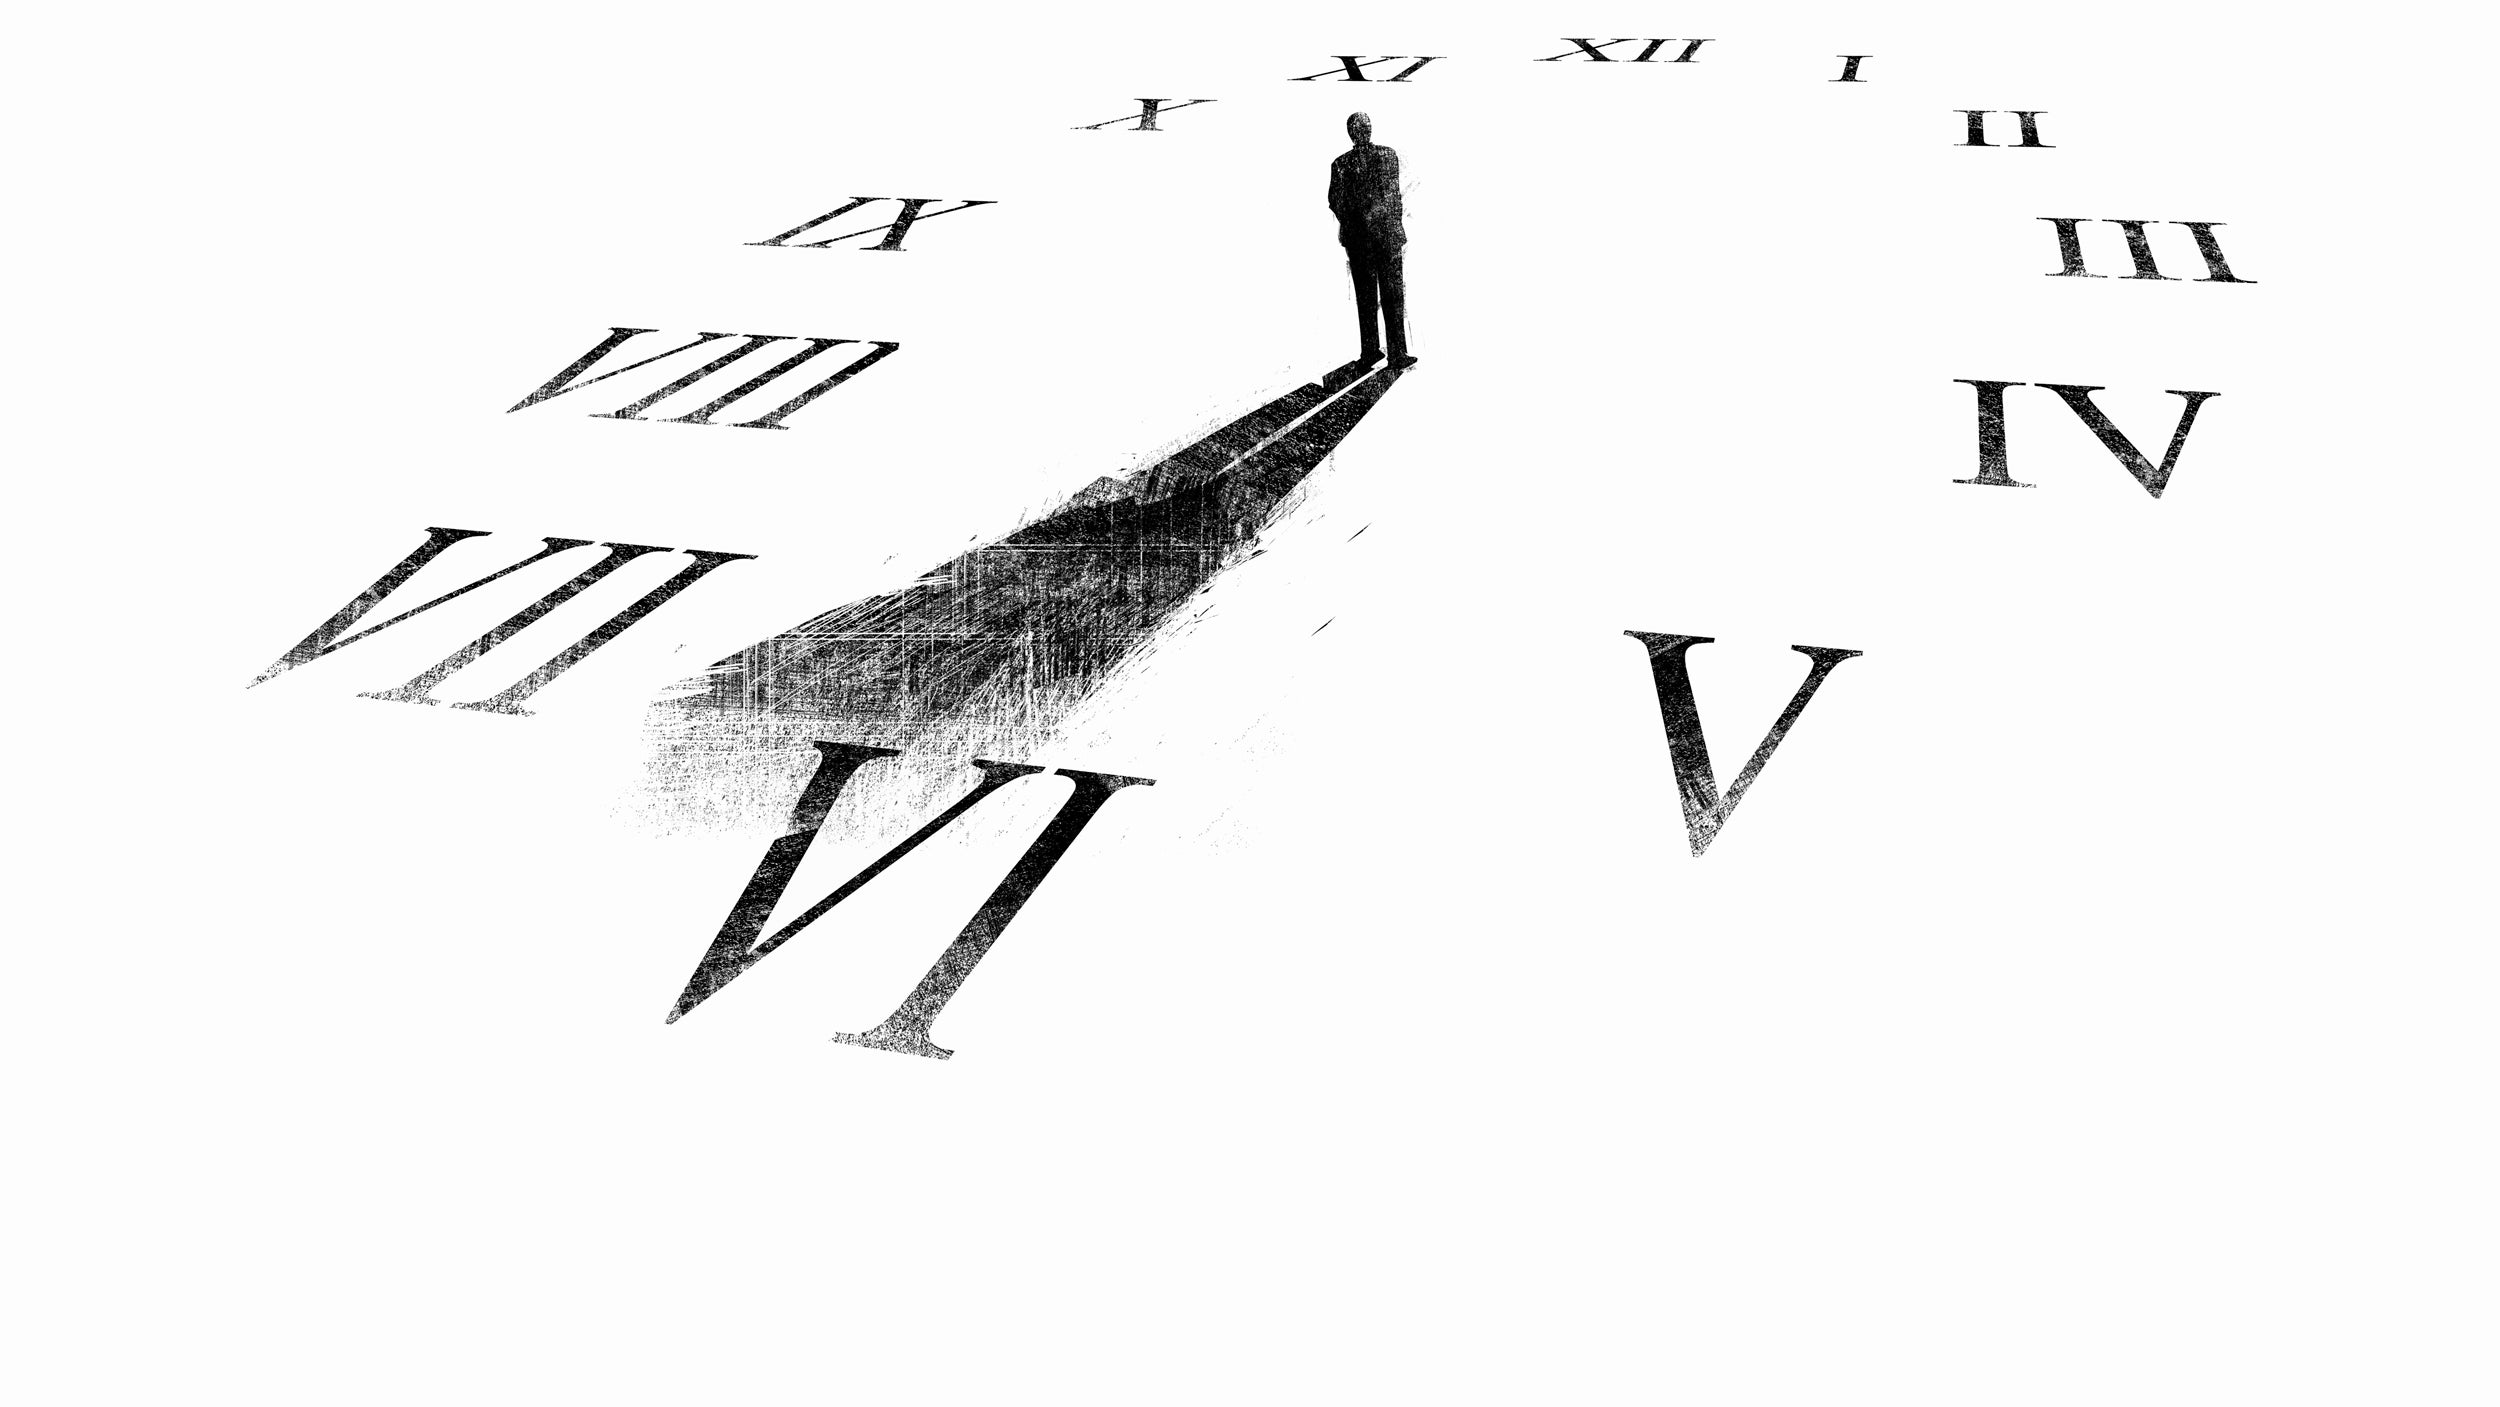 Illustration of man's shadow forming hands on a clock.